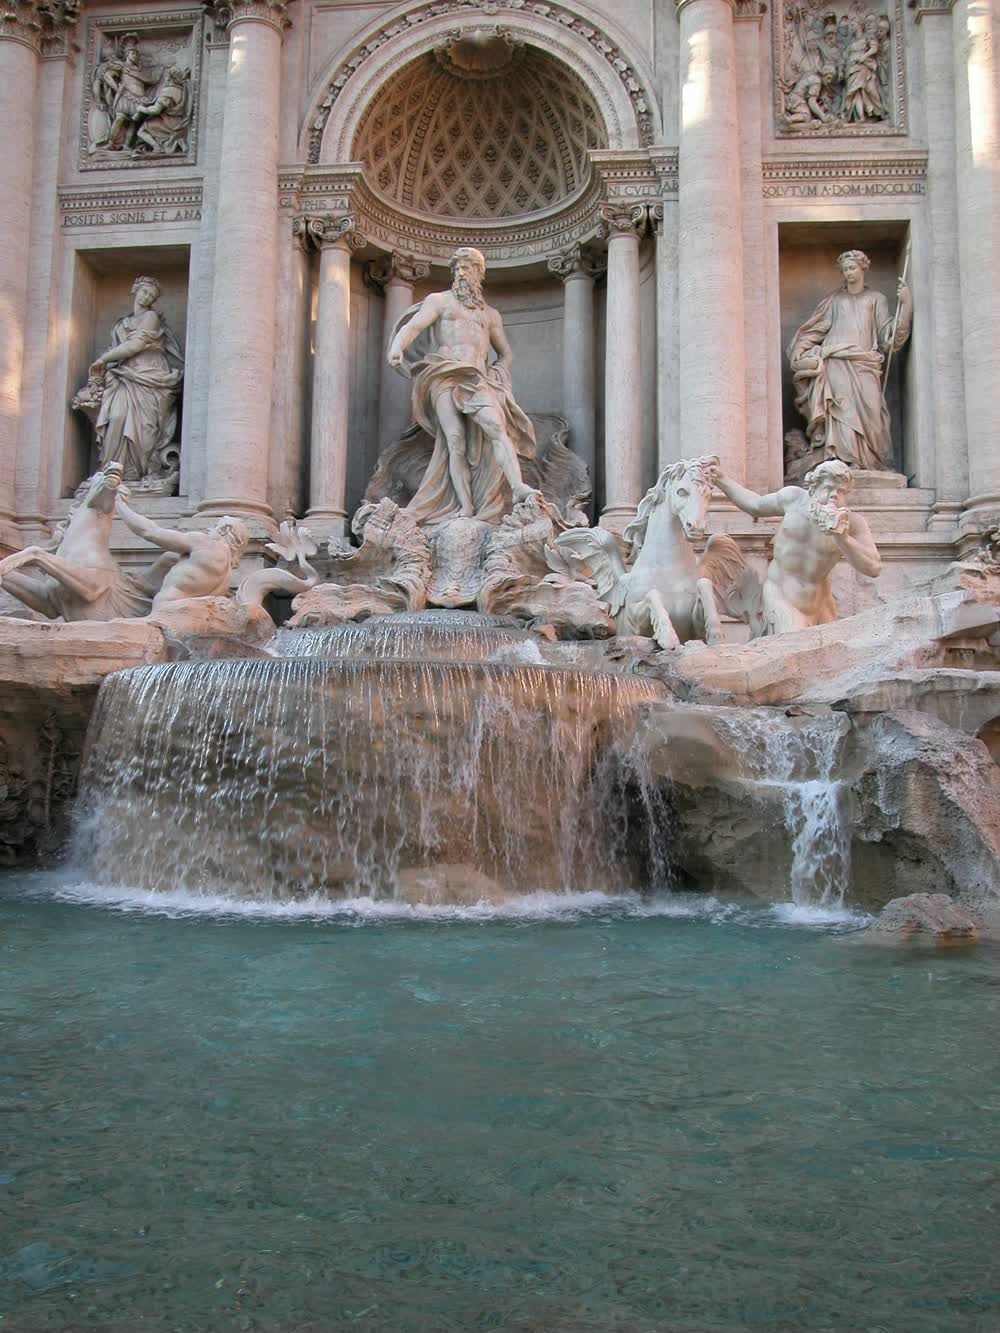 title: Neptune Statue on the Fontana di Trevi in Roma